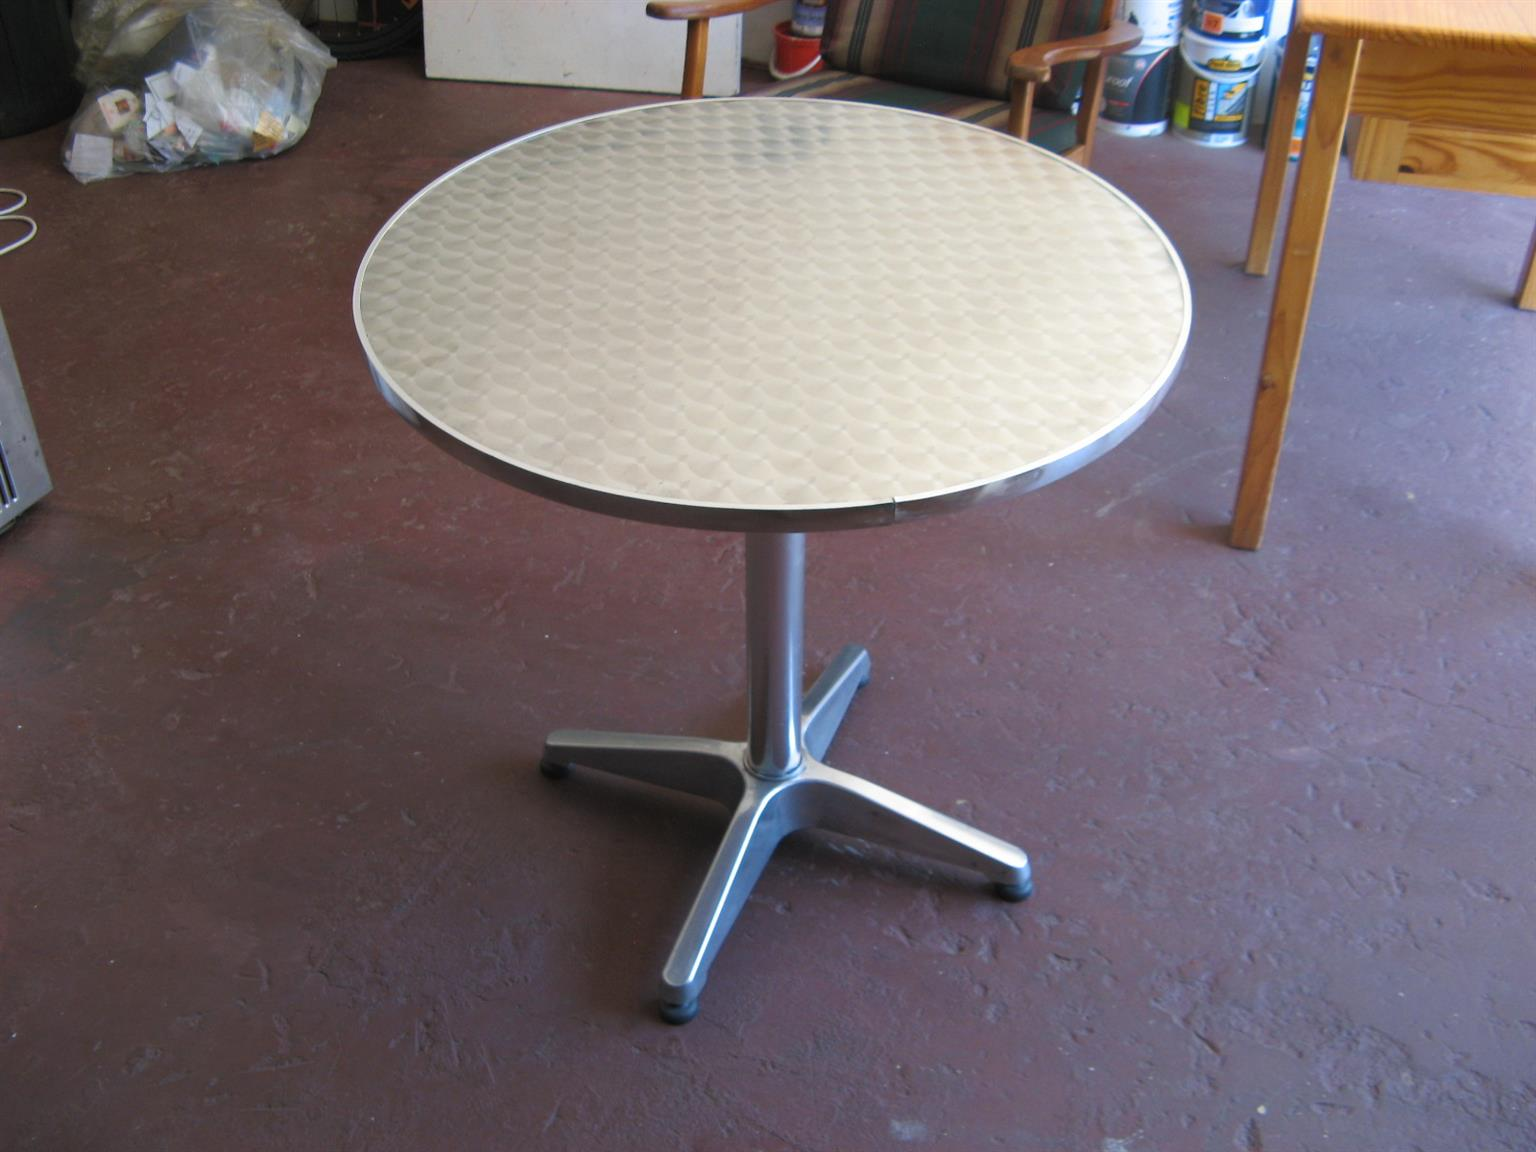 Used furniture going at half price